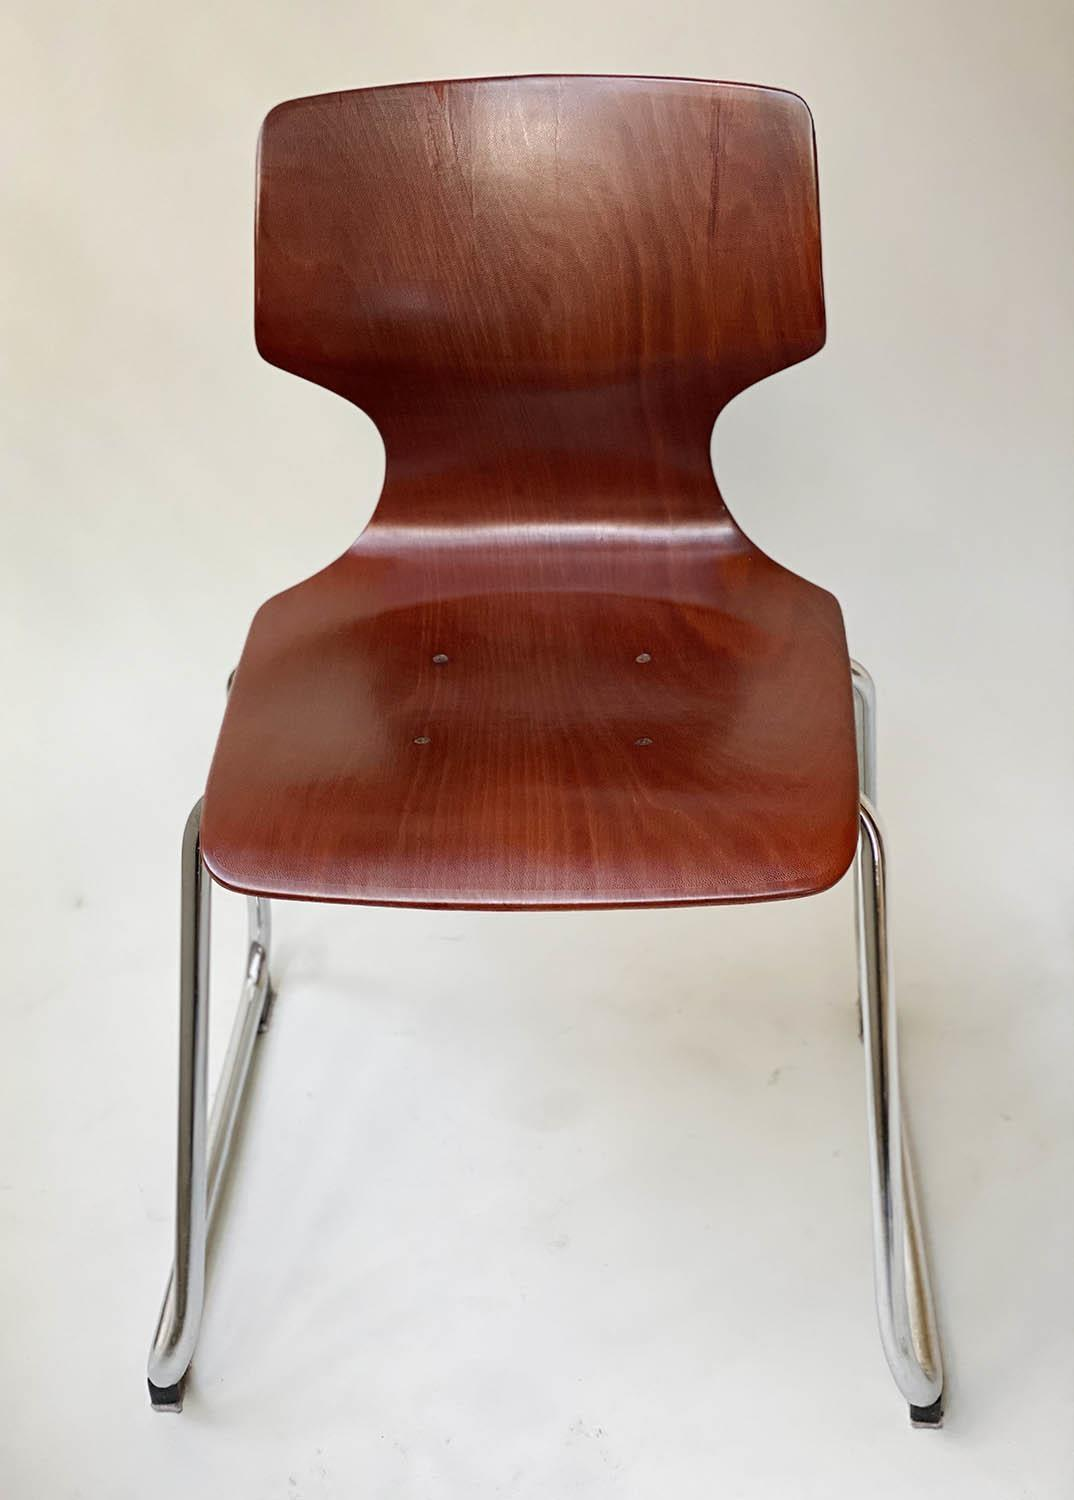 FLOTOTTO PAGHOLZ DINING CHAIRS, a set of five, by Elmar Flototto, 78cm H. (5) - Image 2 of 9